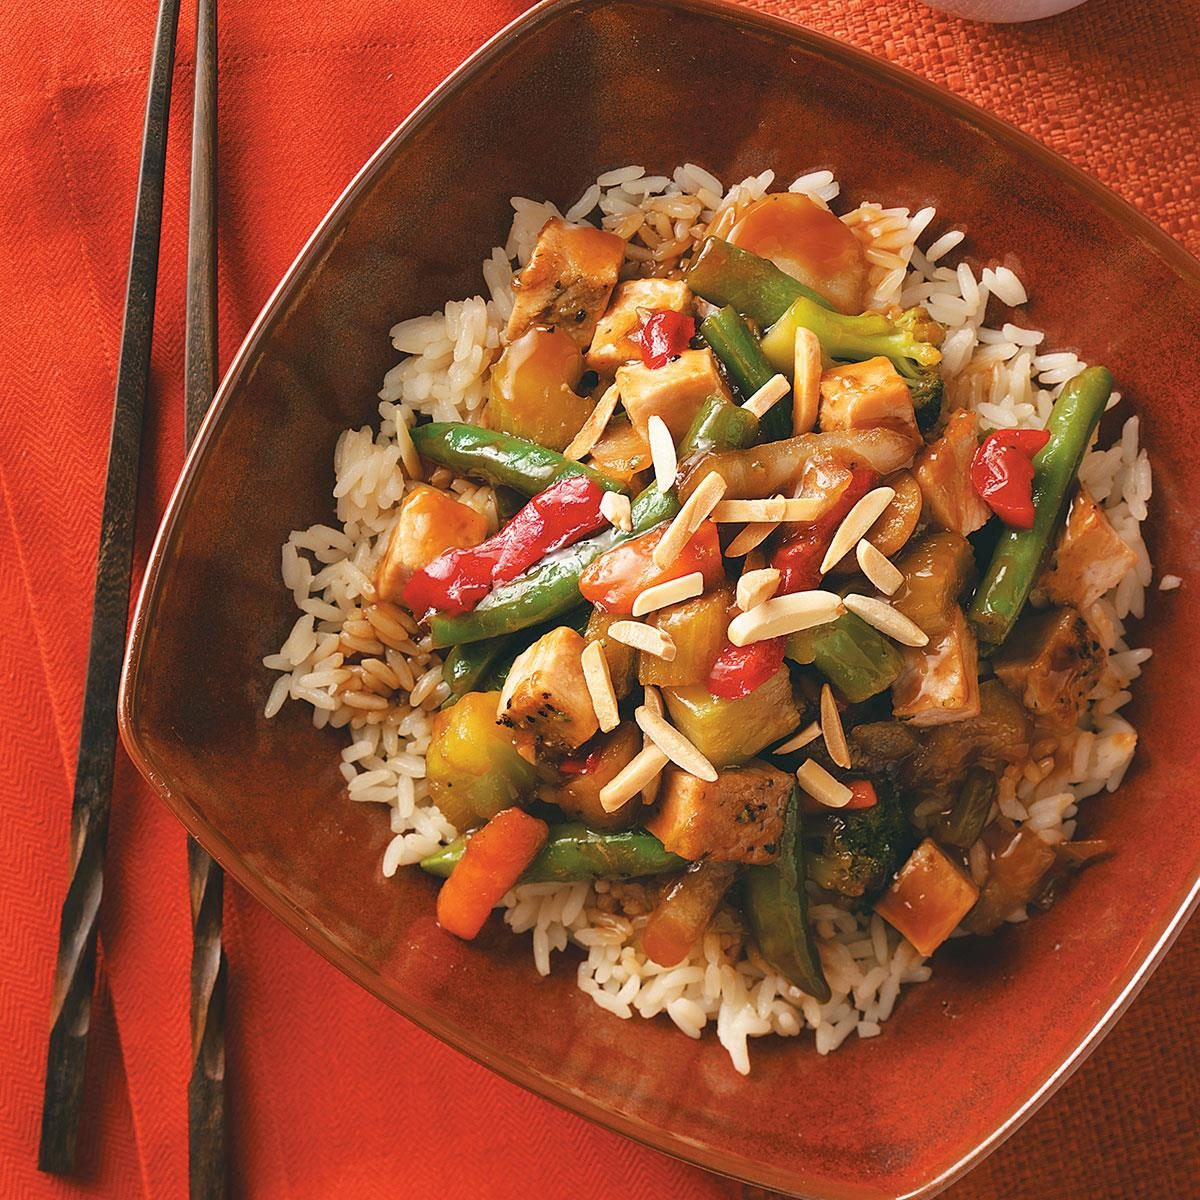 Pork & Vegetable Stir-Fry Recipe